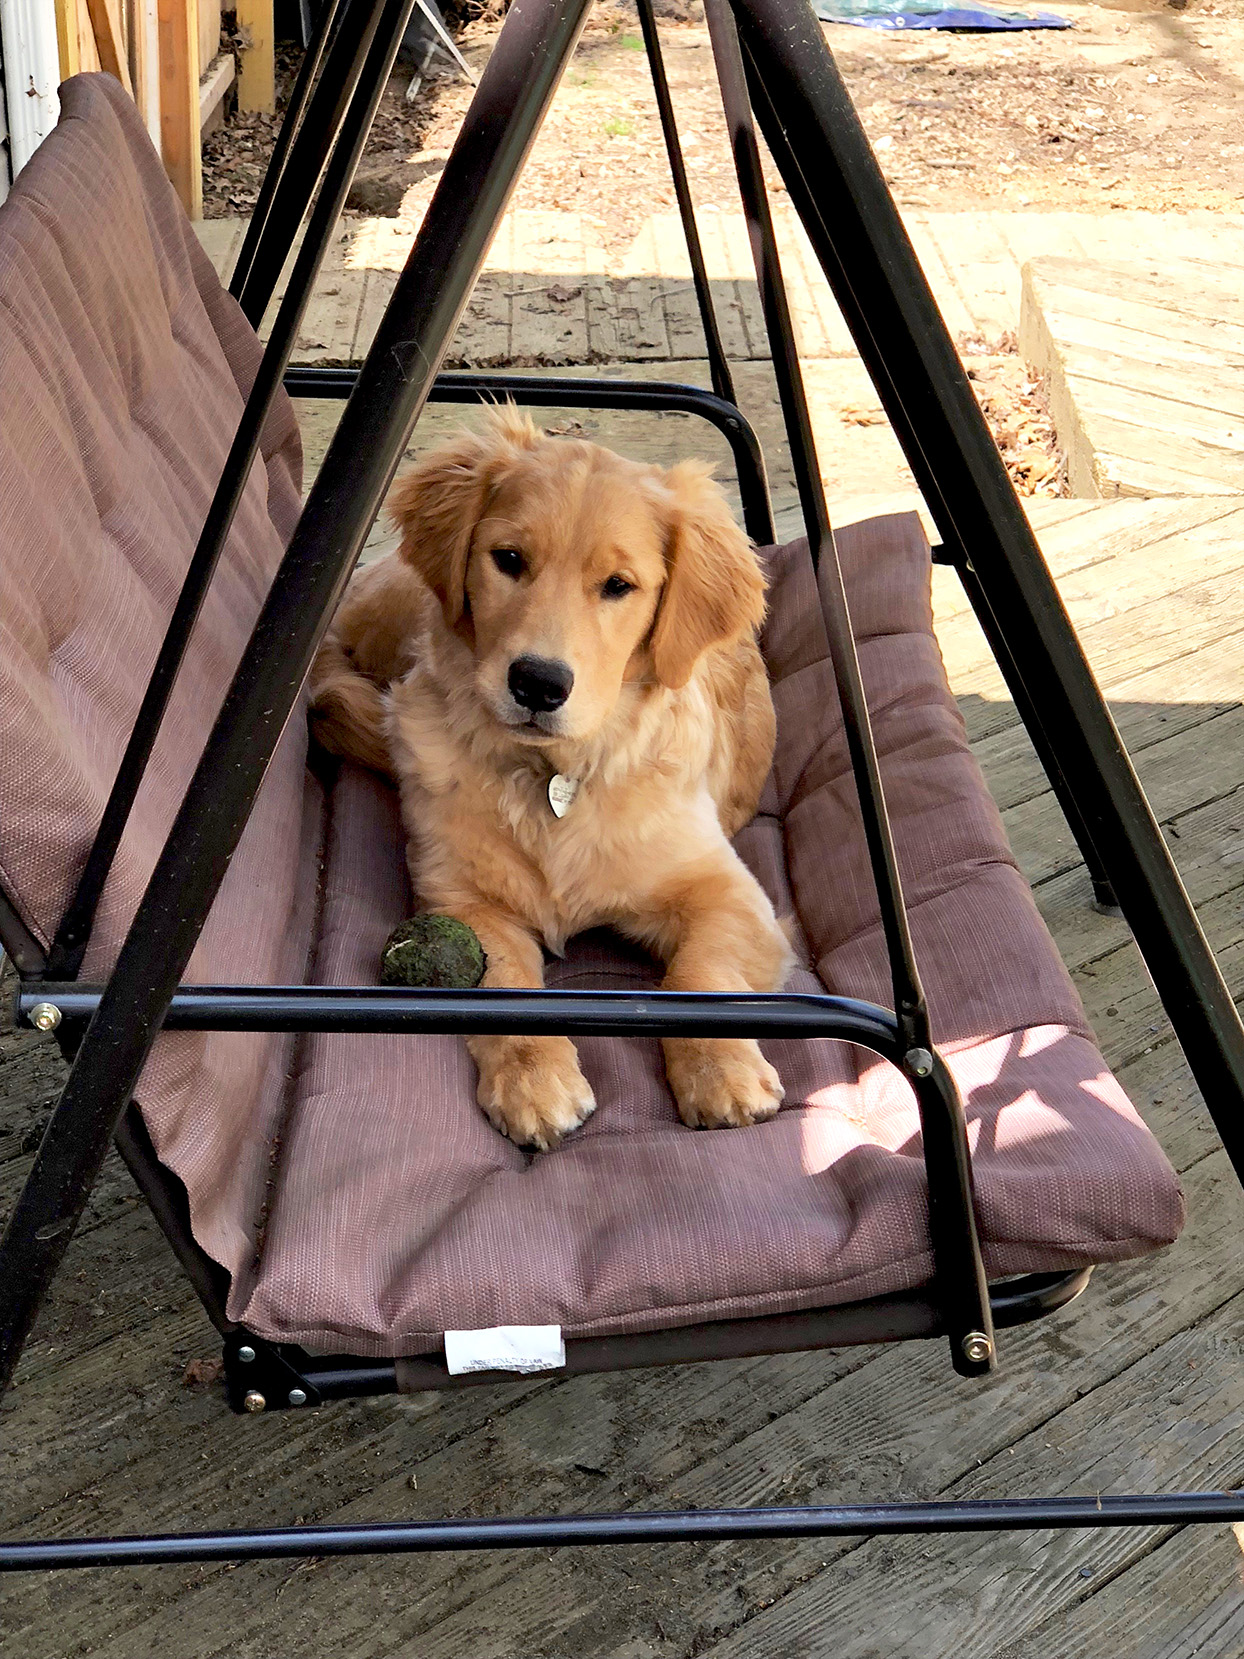 Blonde retriever lays on a porch swing